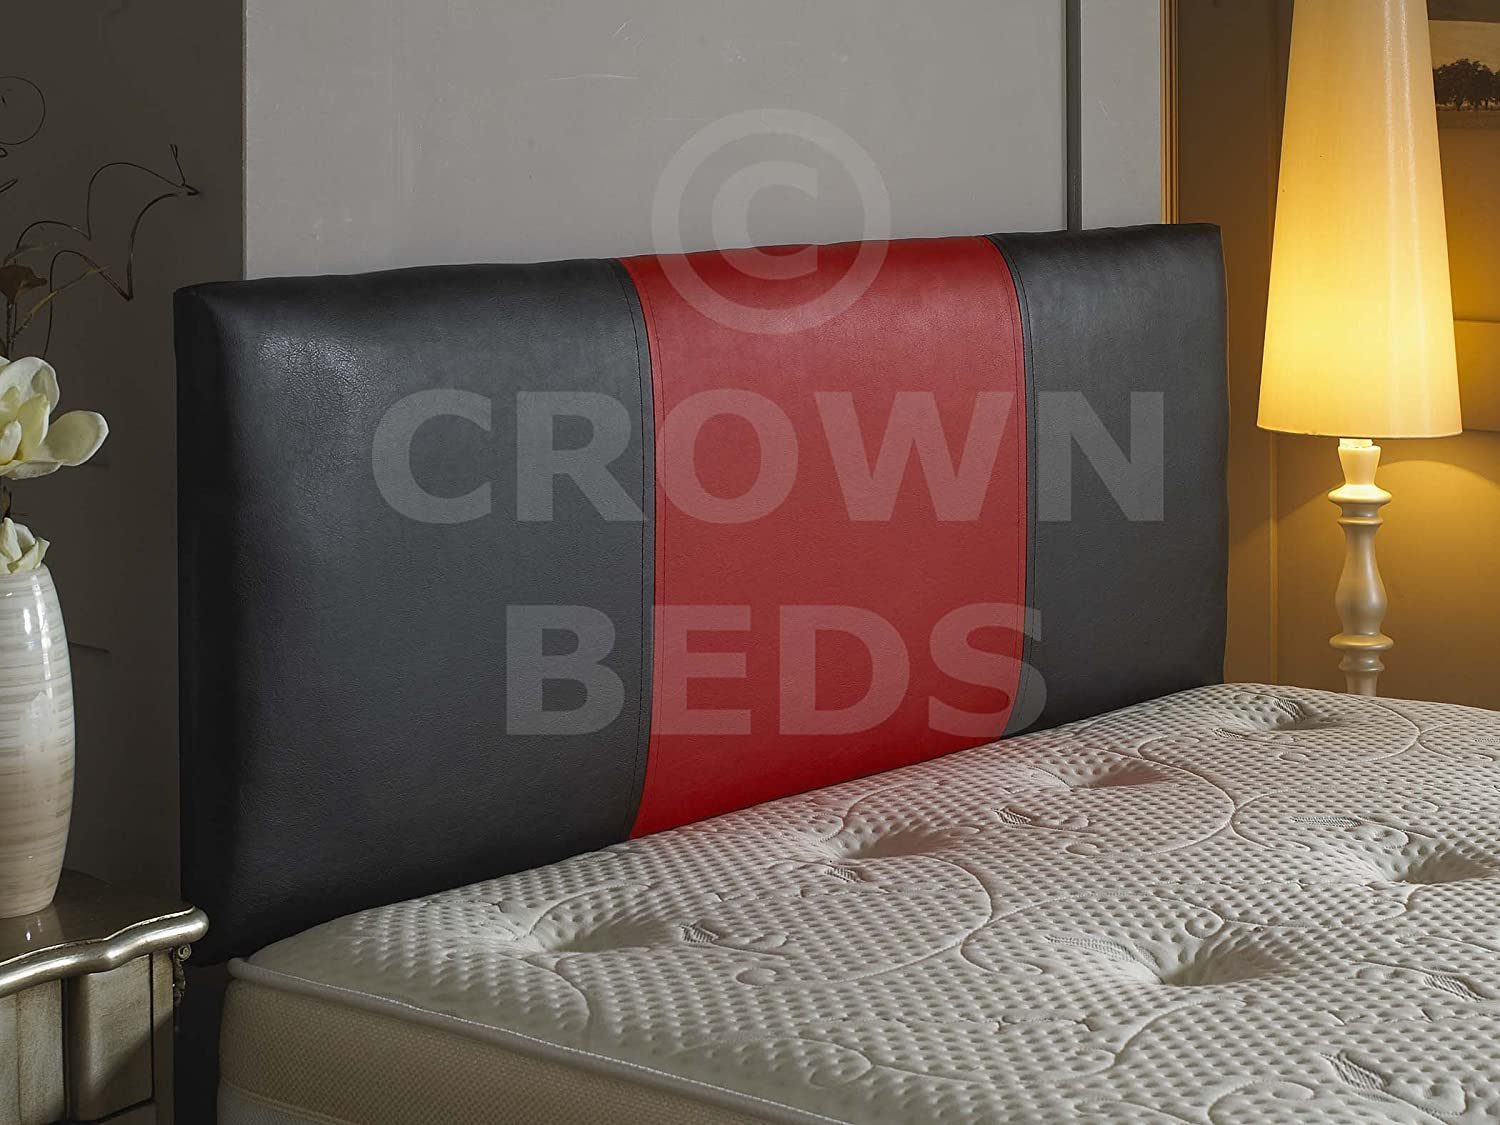 FAUX LEATHER TWO TONE HEADBOARD 2 TONE BED HEAD (Black/Blue/black, 2ft6 (Small Single)) CROWNBEDSUK